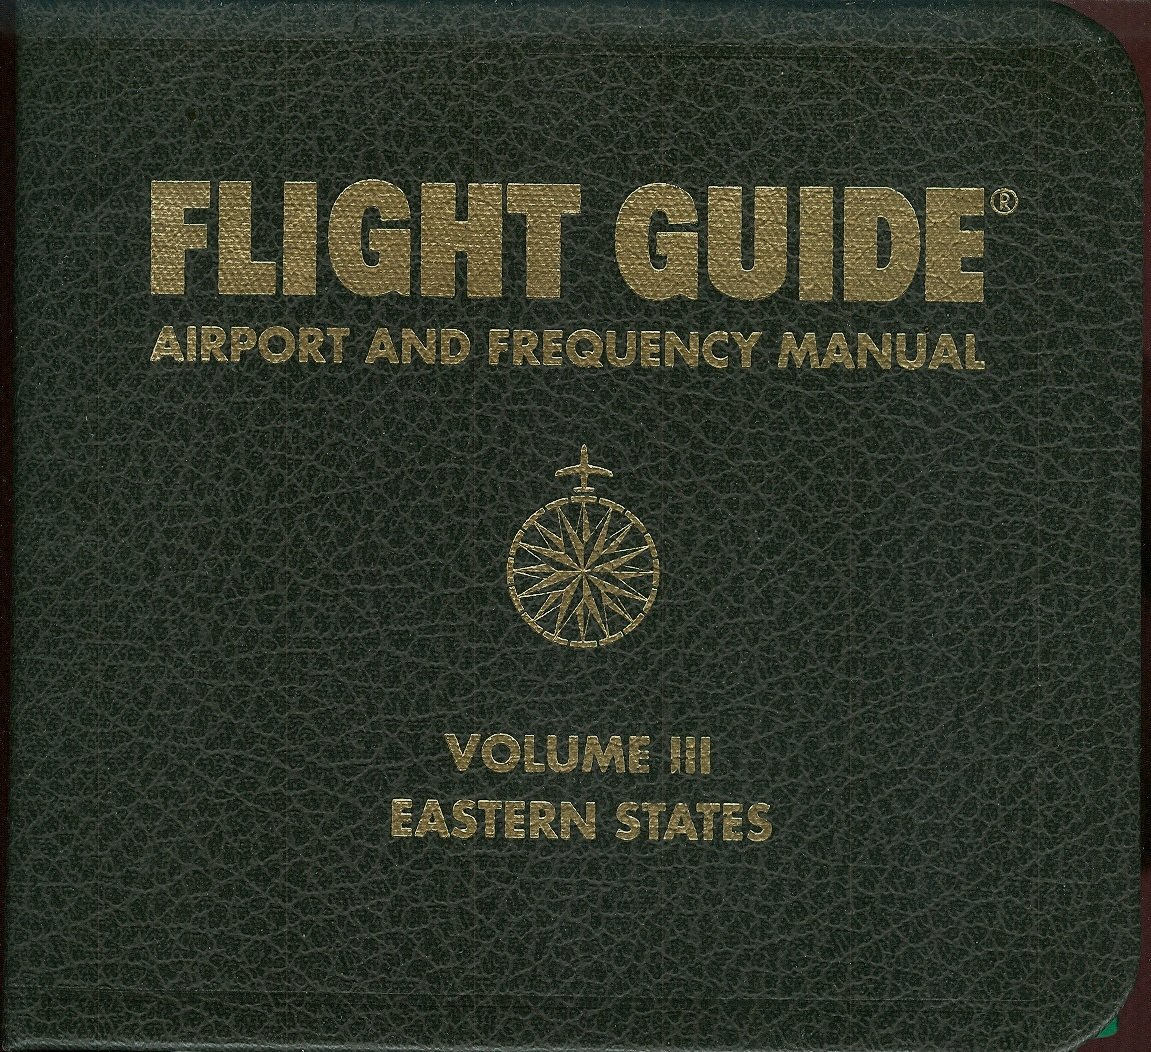 Flight Guide - Airport and Frequency Manual - Volume III Eastern States Monty Navarre